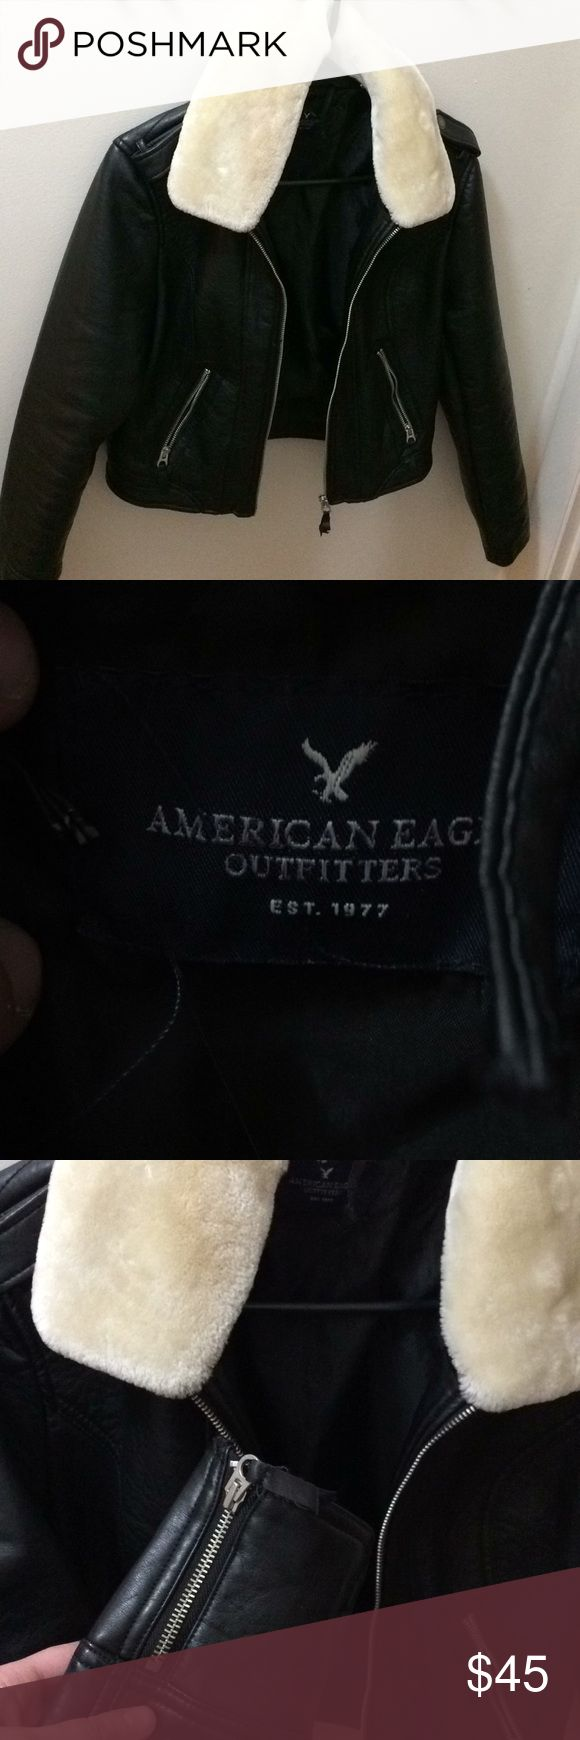 Badass American Eagle faux leather jacket moto Moto faux leather jacket. Made by American eagle. Perfect condition, except for a couple of the elastics that button the collar snapped. Easy fix. Size medium. Good quality, feels durable. Faux fur collar. American Eagle Outfitters Jackets & Coats Utility Jackets